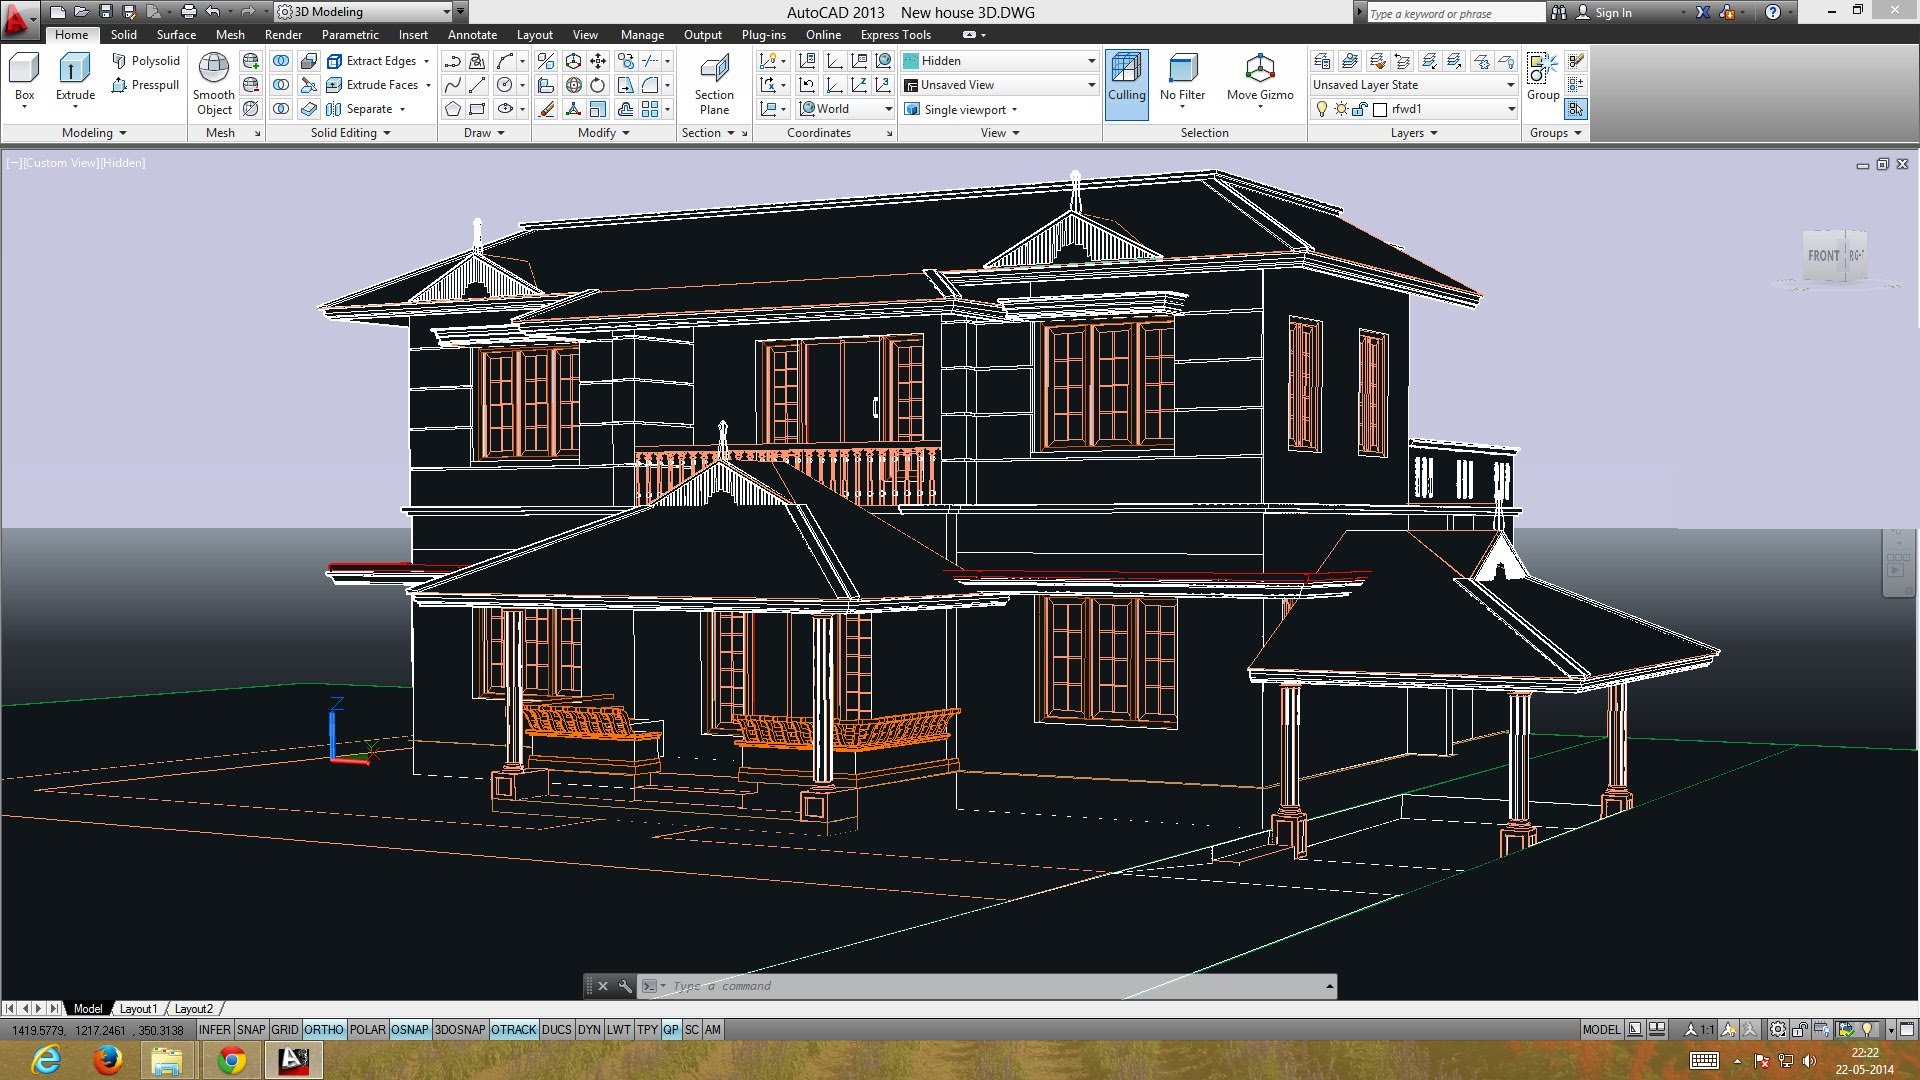 (Photo: Courtesy from http://www.cadcamengineering.net/autocad-3d-training-manual/) AutoCard software has been developed to ease their workload, Making imaginations come to life.